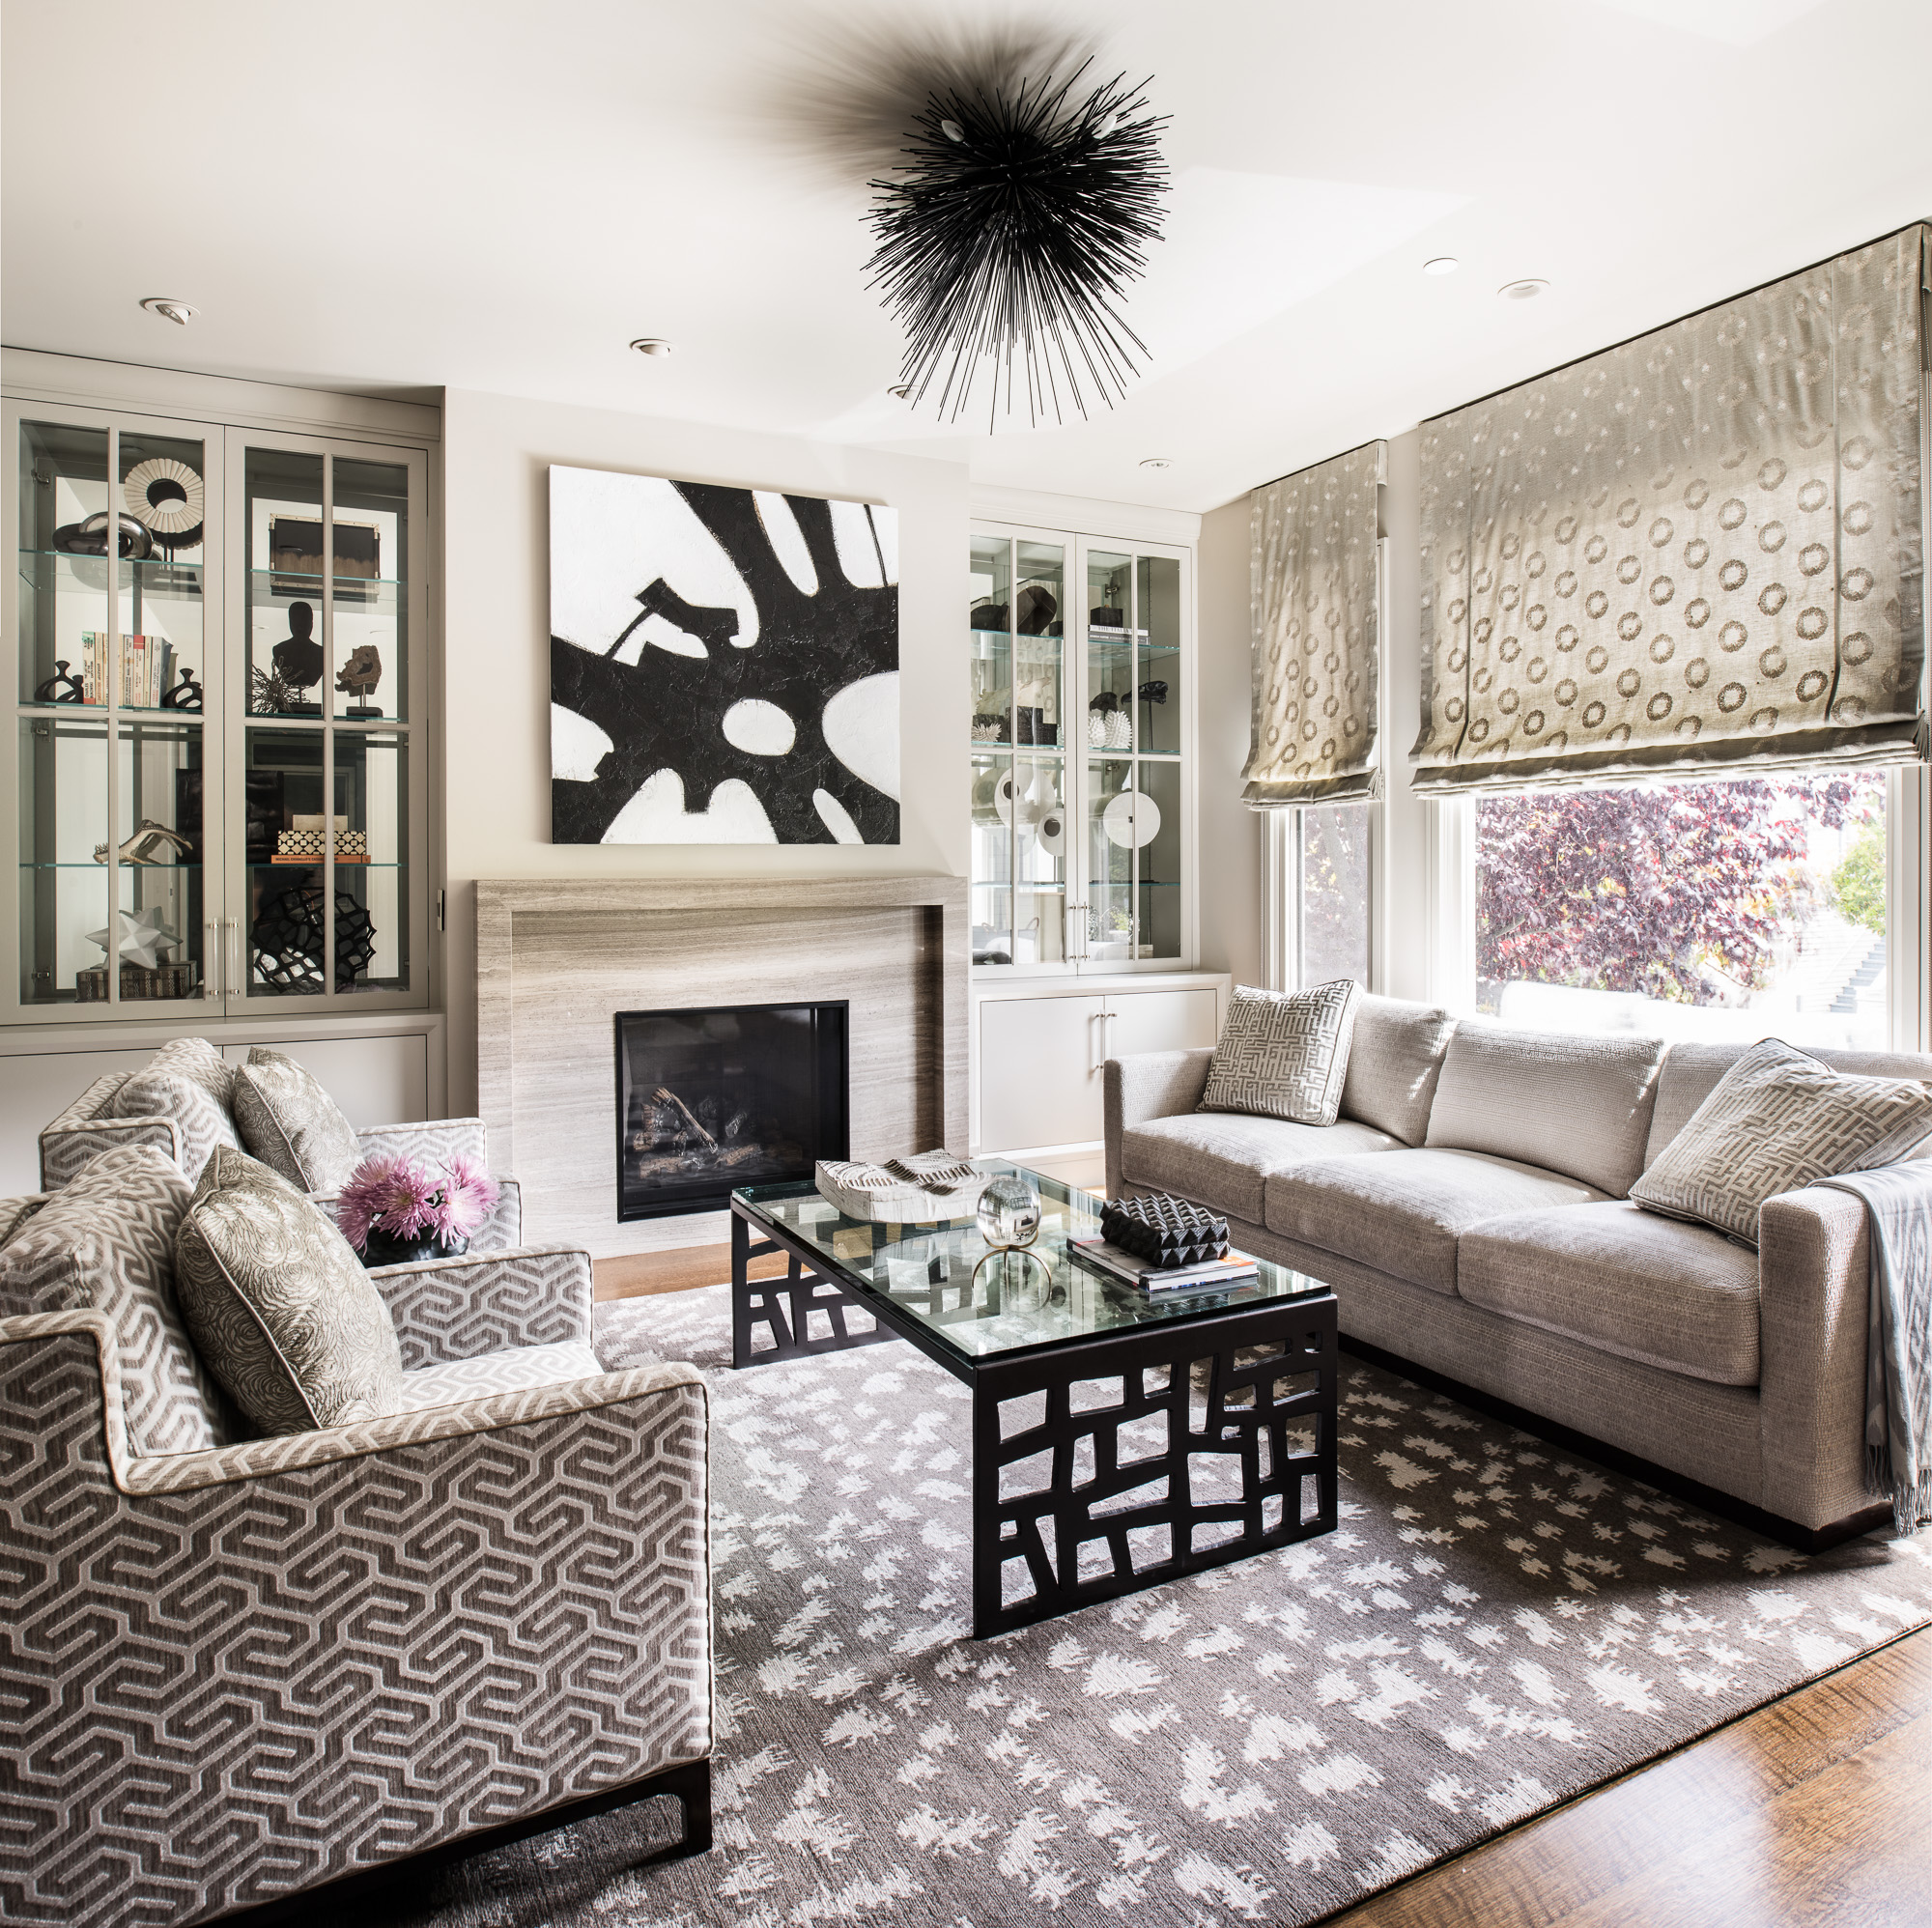 Living room with gray walls, white oak floors, and tonal fabrics with texture accented by bold touches. By Tineke Triggs / Artistic Designs for Living